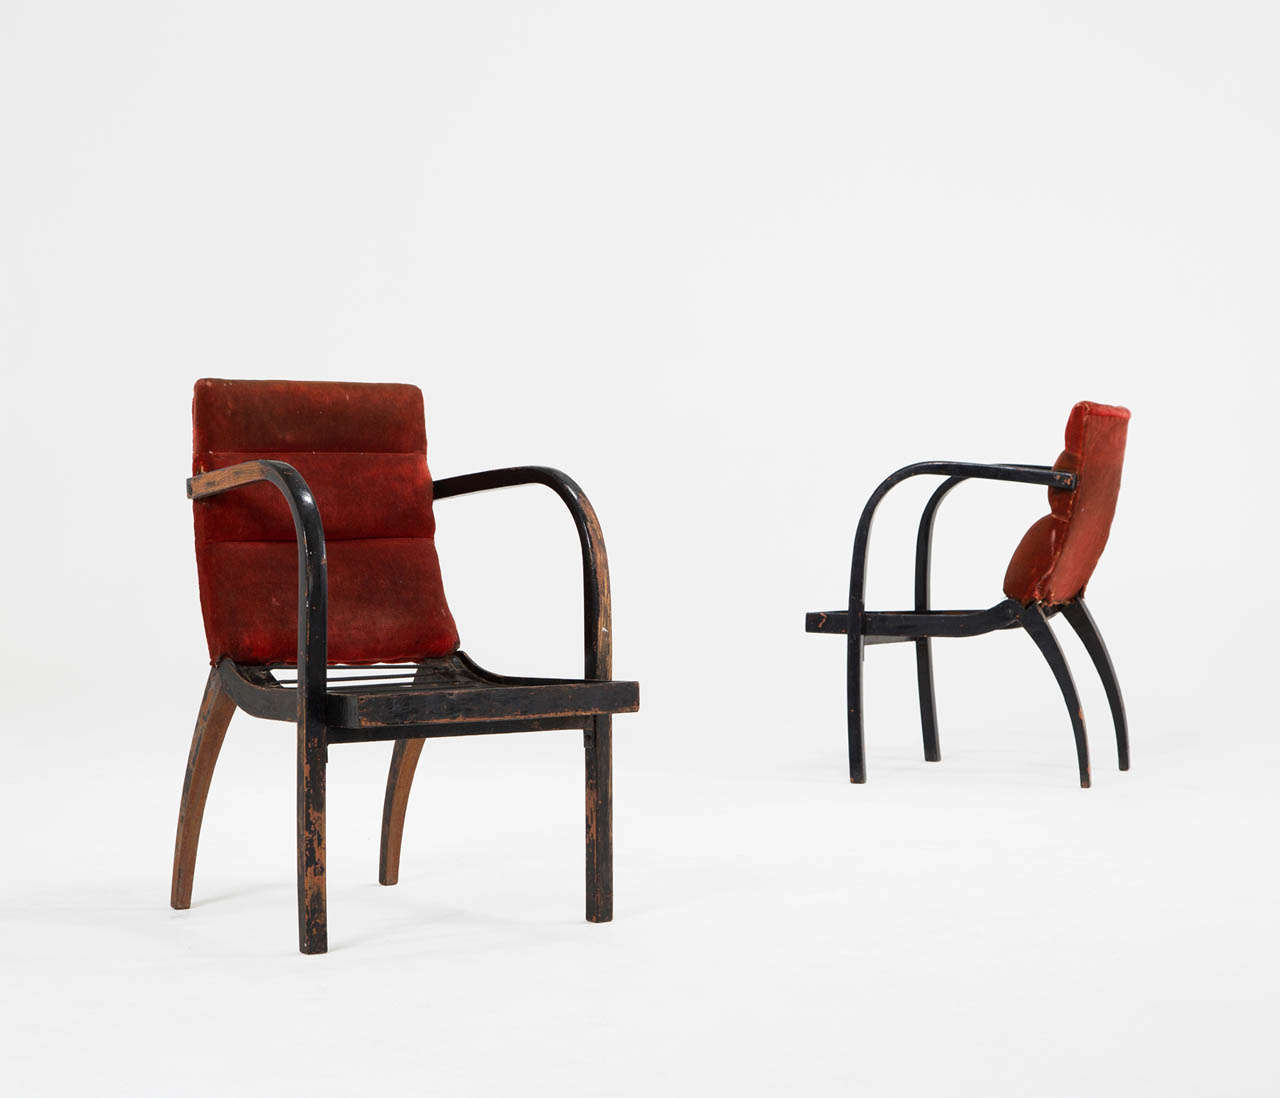 Thonet Bentwood Armchairs With Original Upholstery 1950s For Sale At 1stdibs